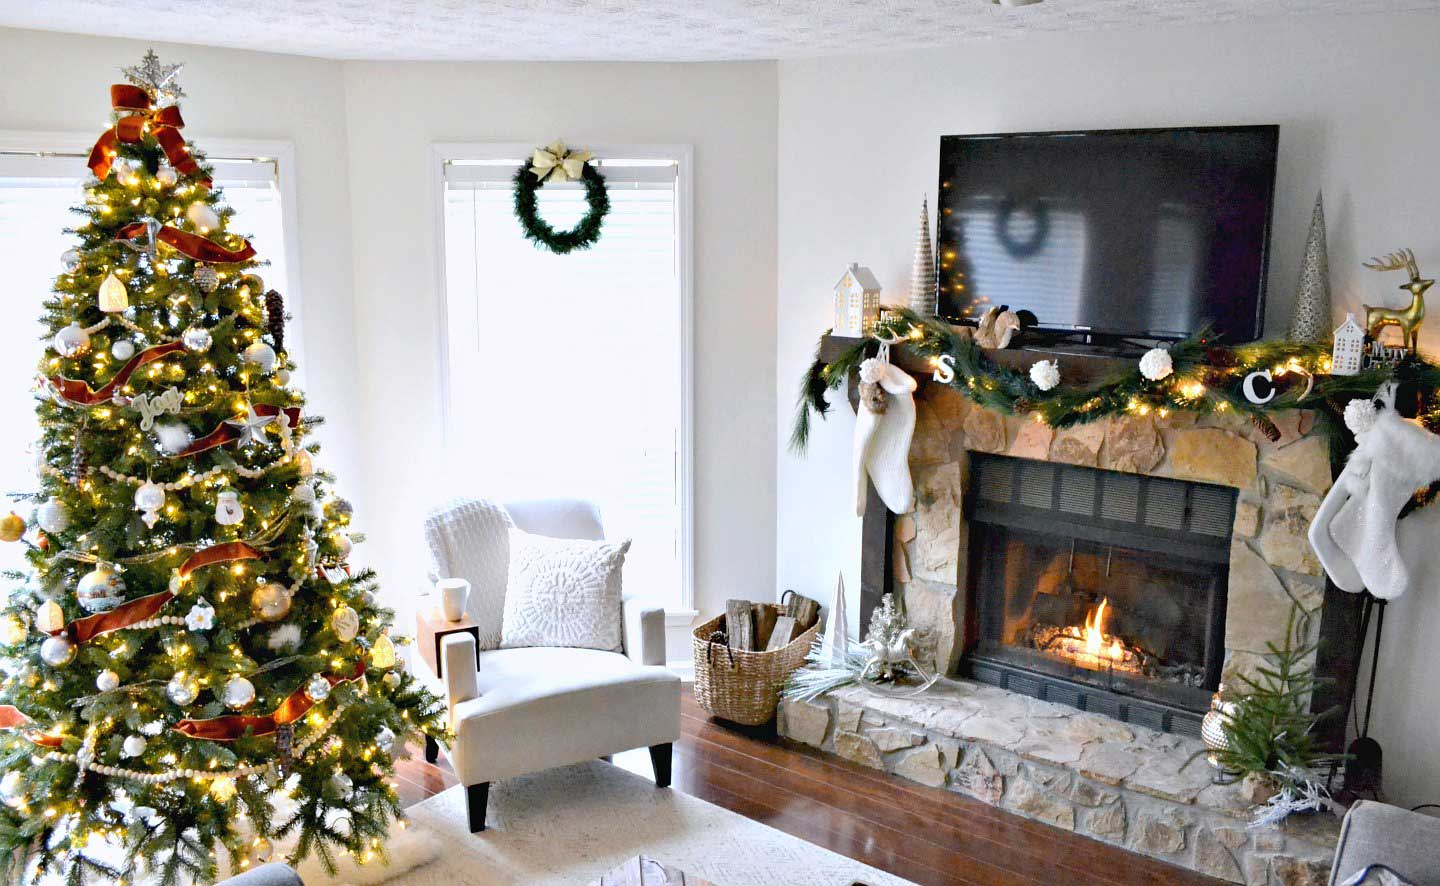 Christmas living room 2017 - with neutrals and copper accents on Christmas tree and fireplace